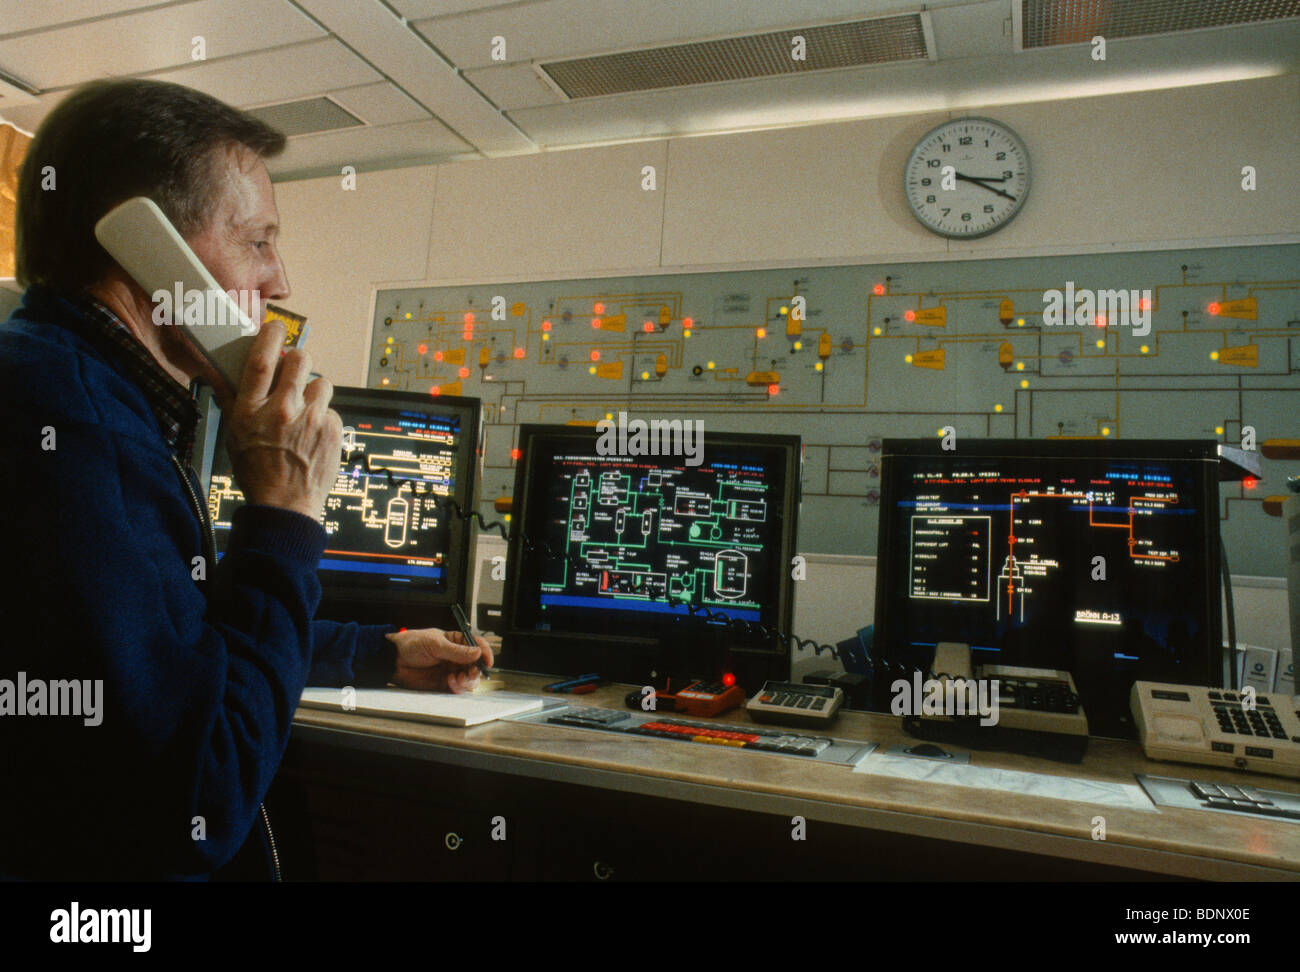 Offshore oil rig control room Stock Photo: 25682286 - Alamy